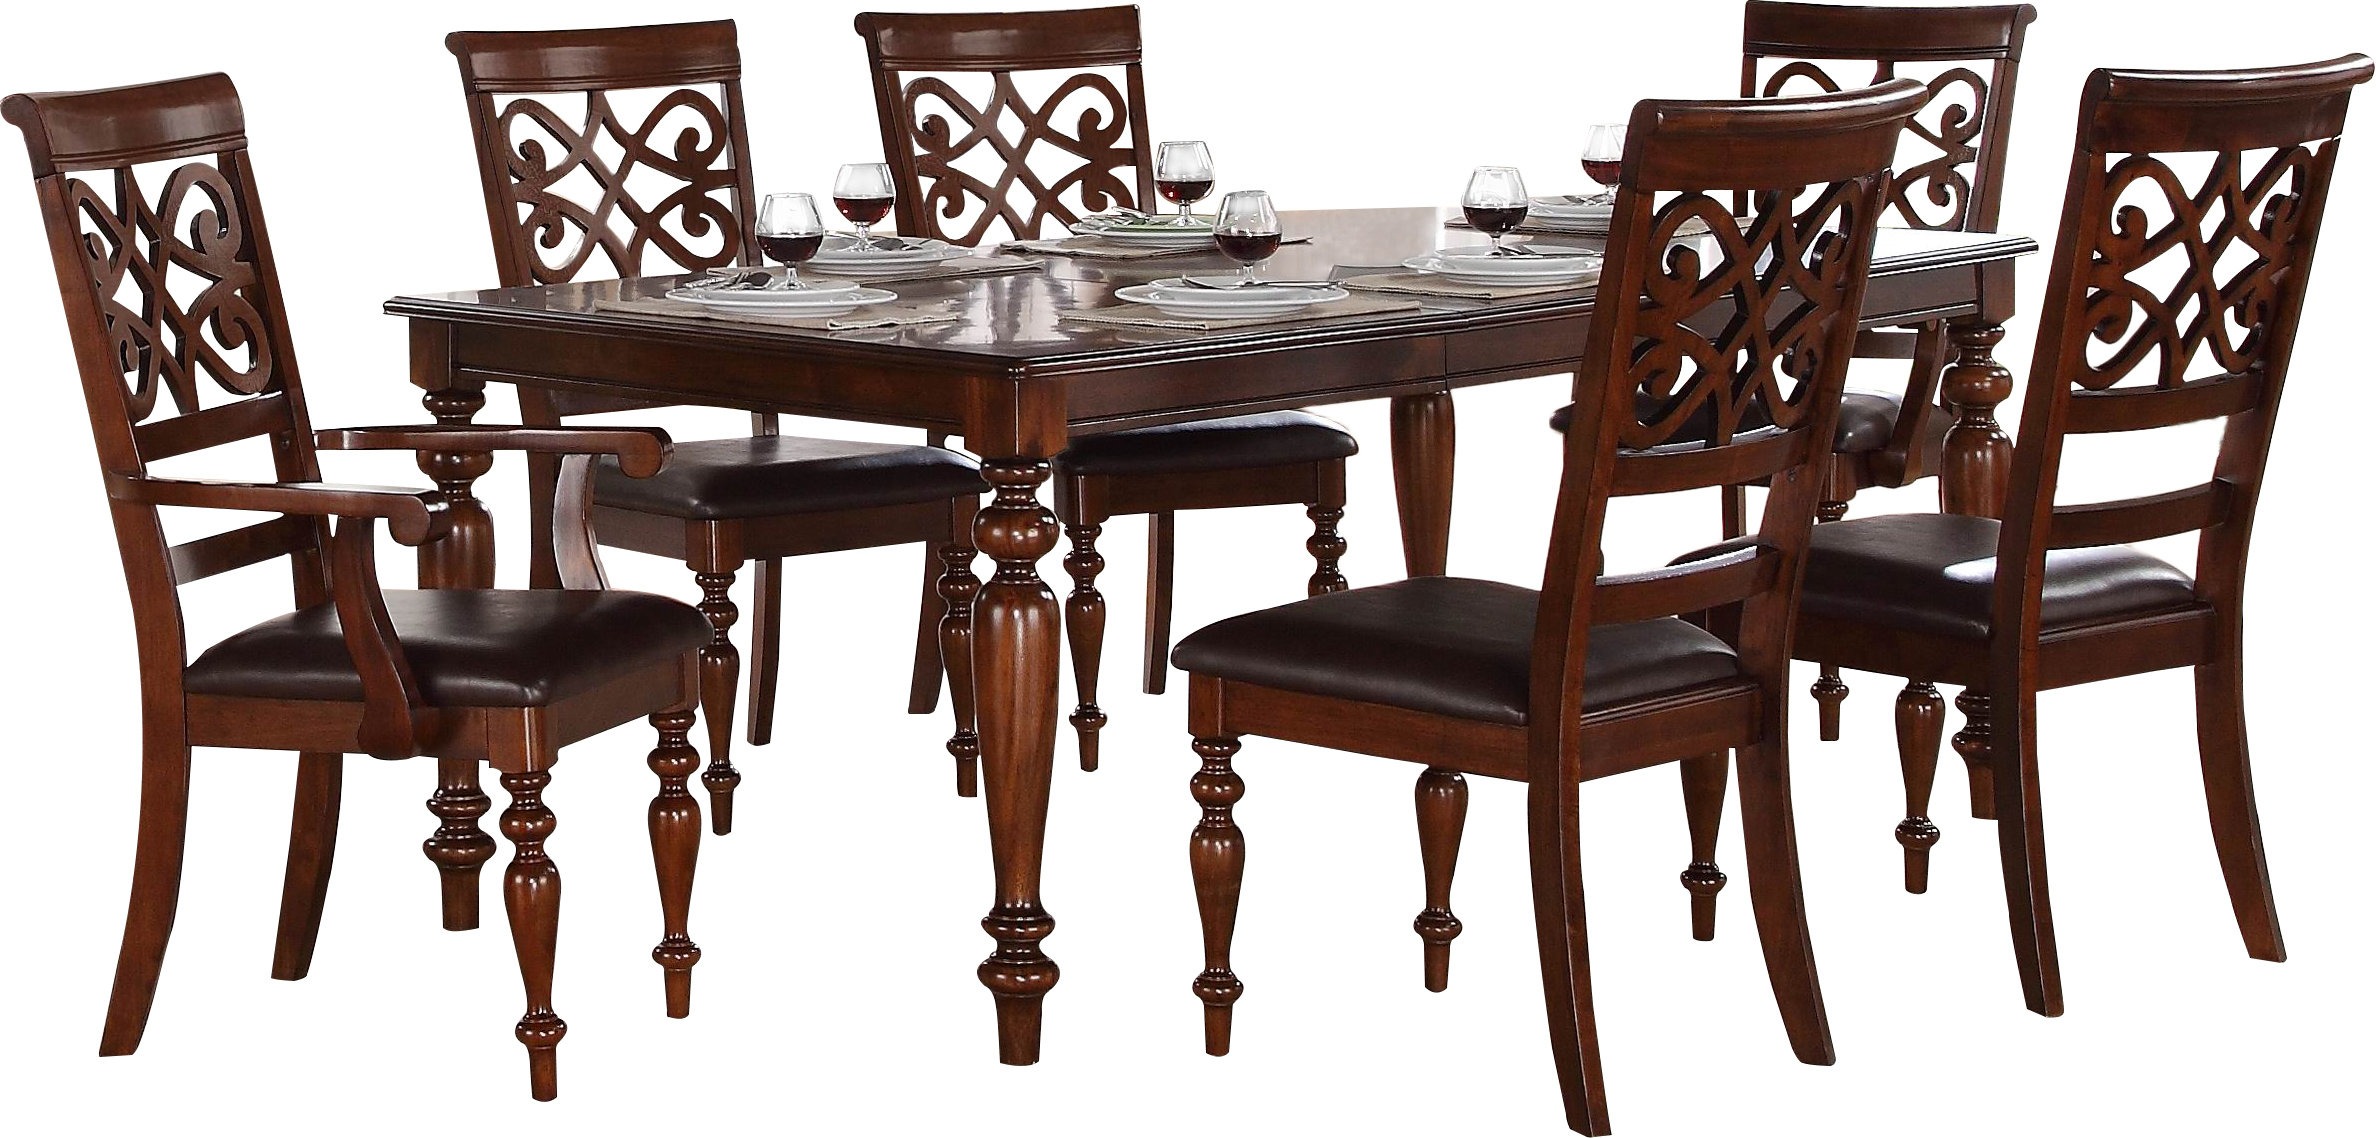 Laconia 7 Pieces Solid Wood Dining Sets (Set Of 7) Intended For Most Current Darby Home Co Leith 7 Piece Dining Set & Reviews (View 11 of 25)